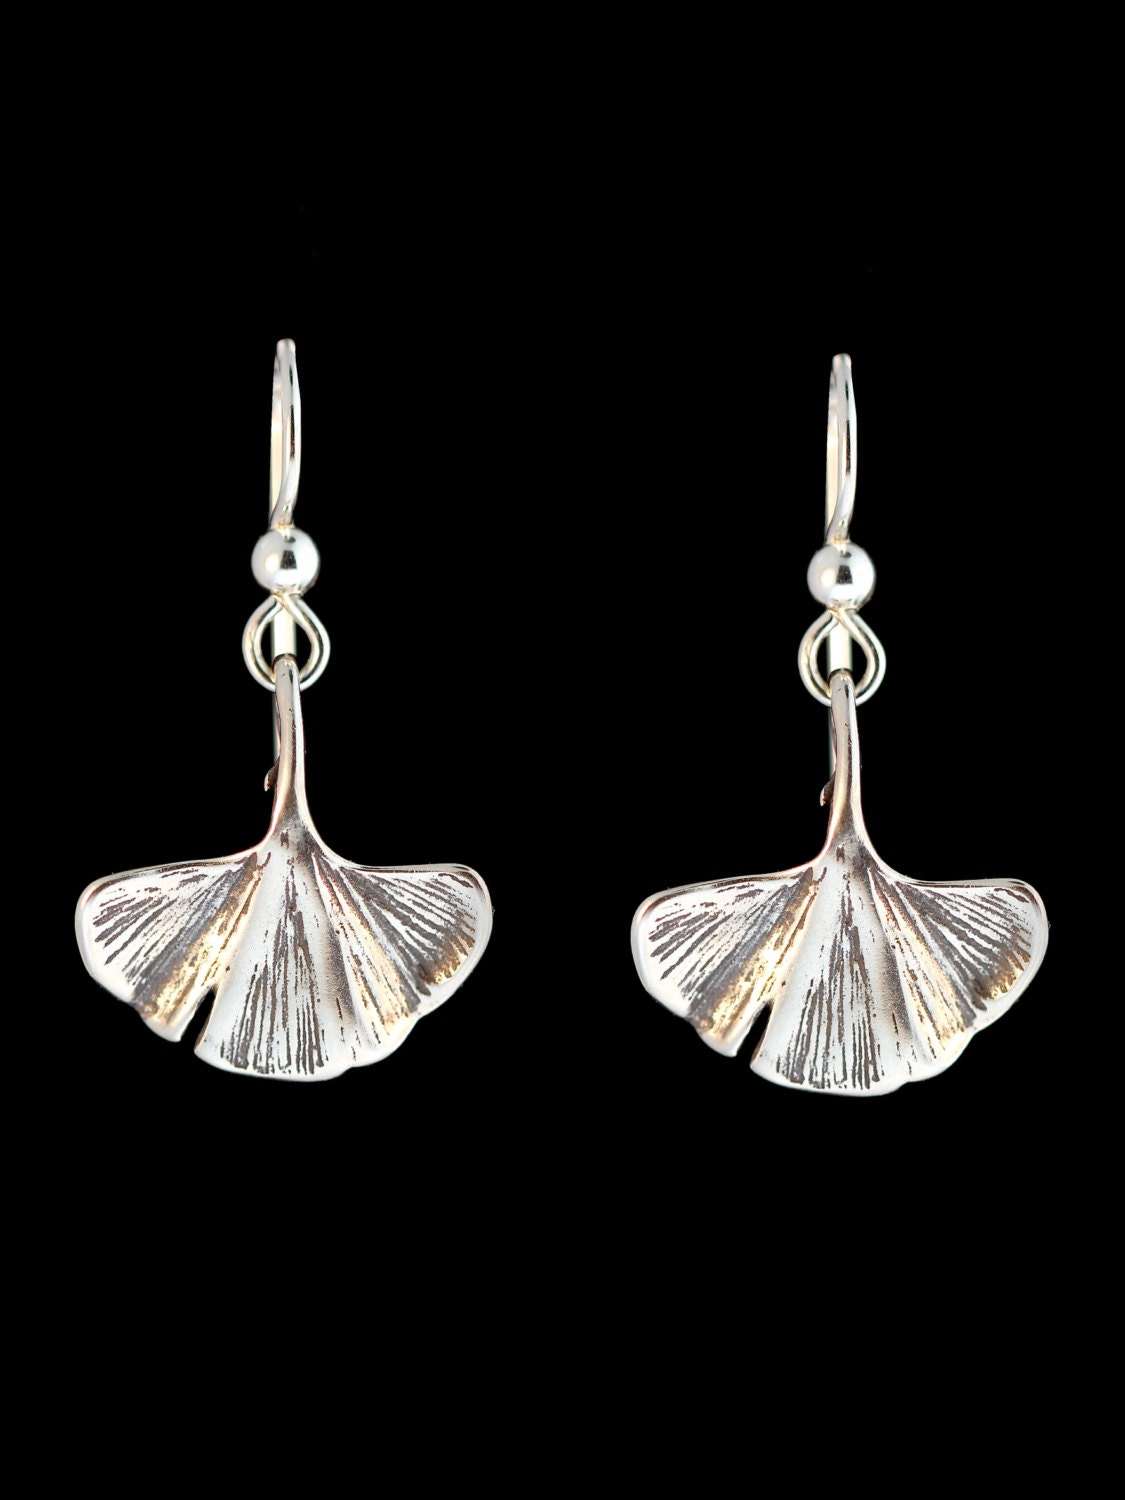 ginkgo leaf earrings silver leaf charm earrings silver